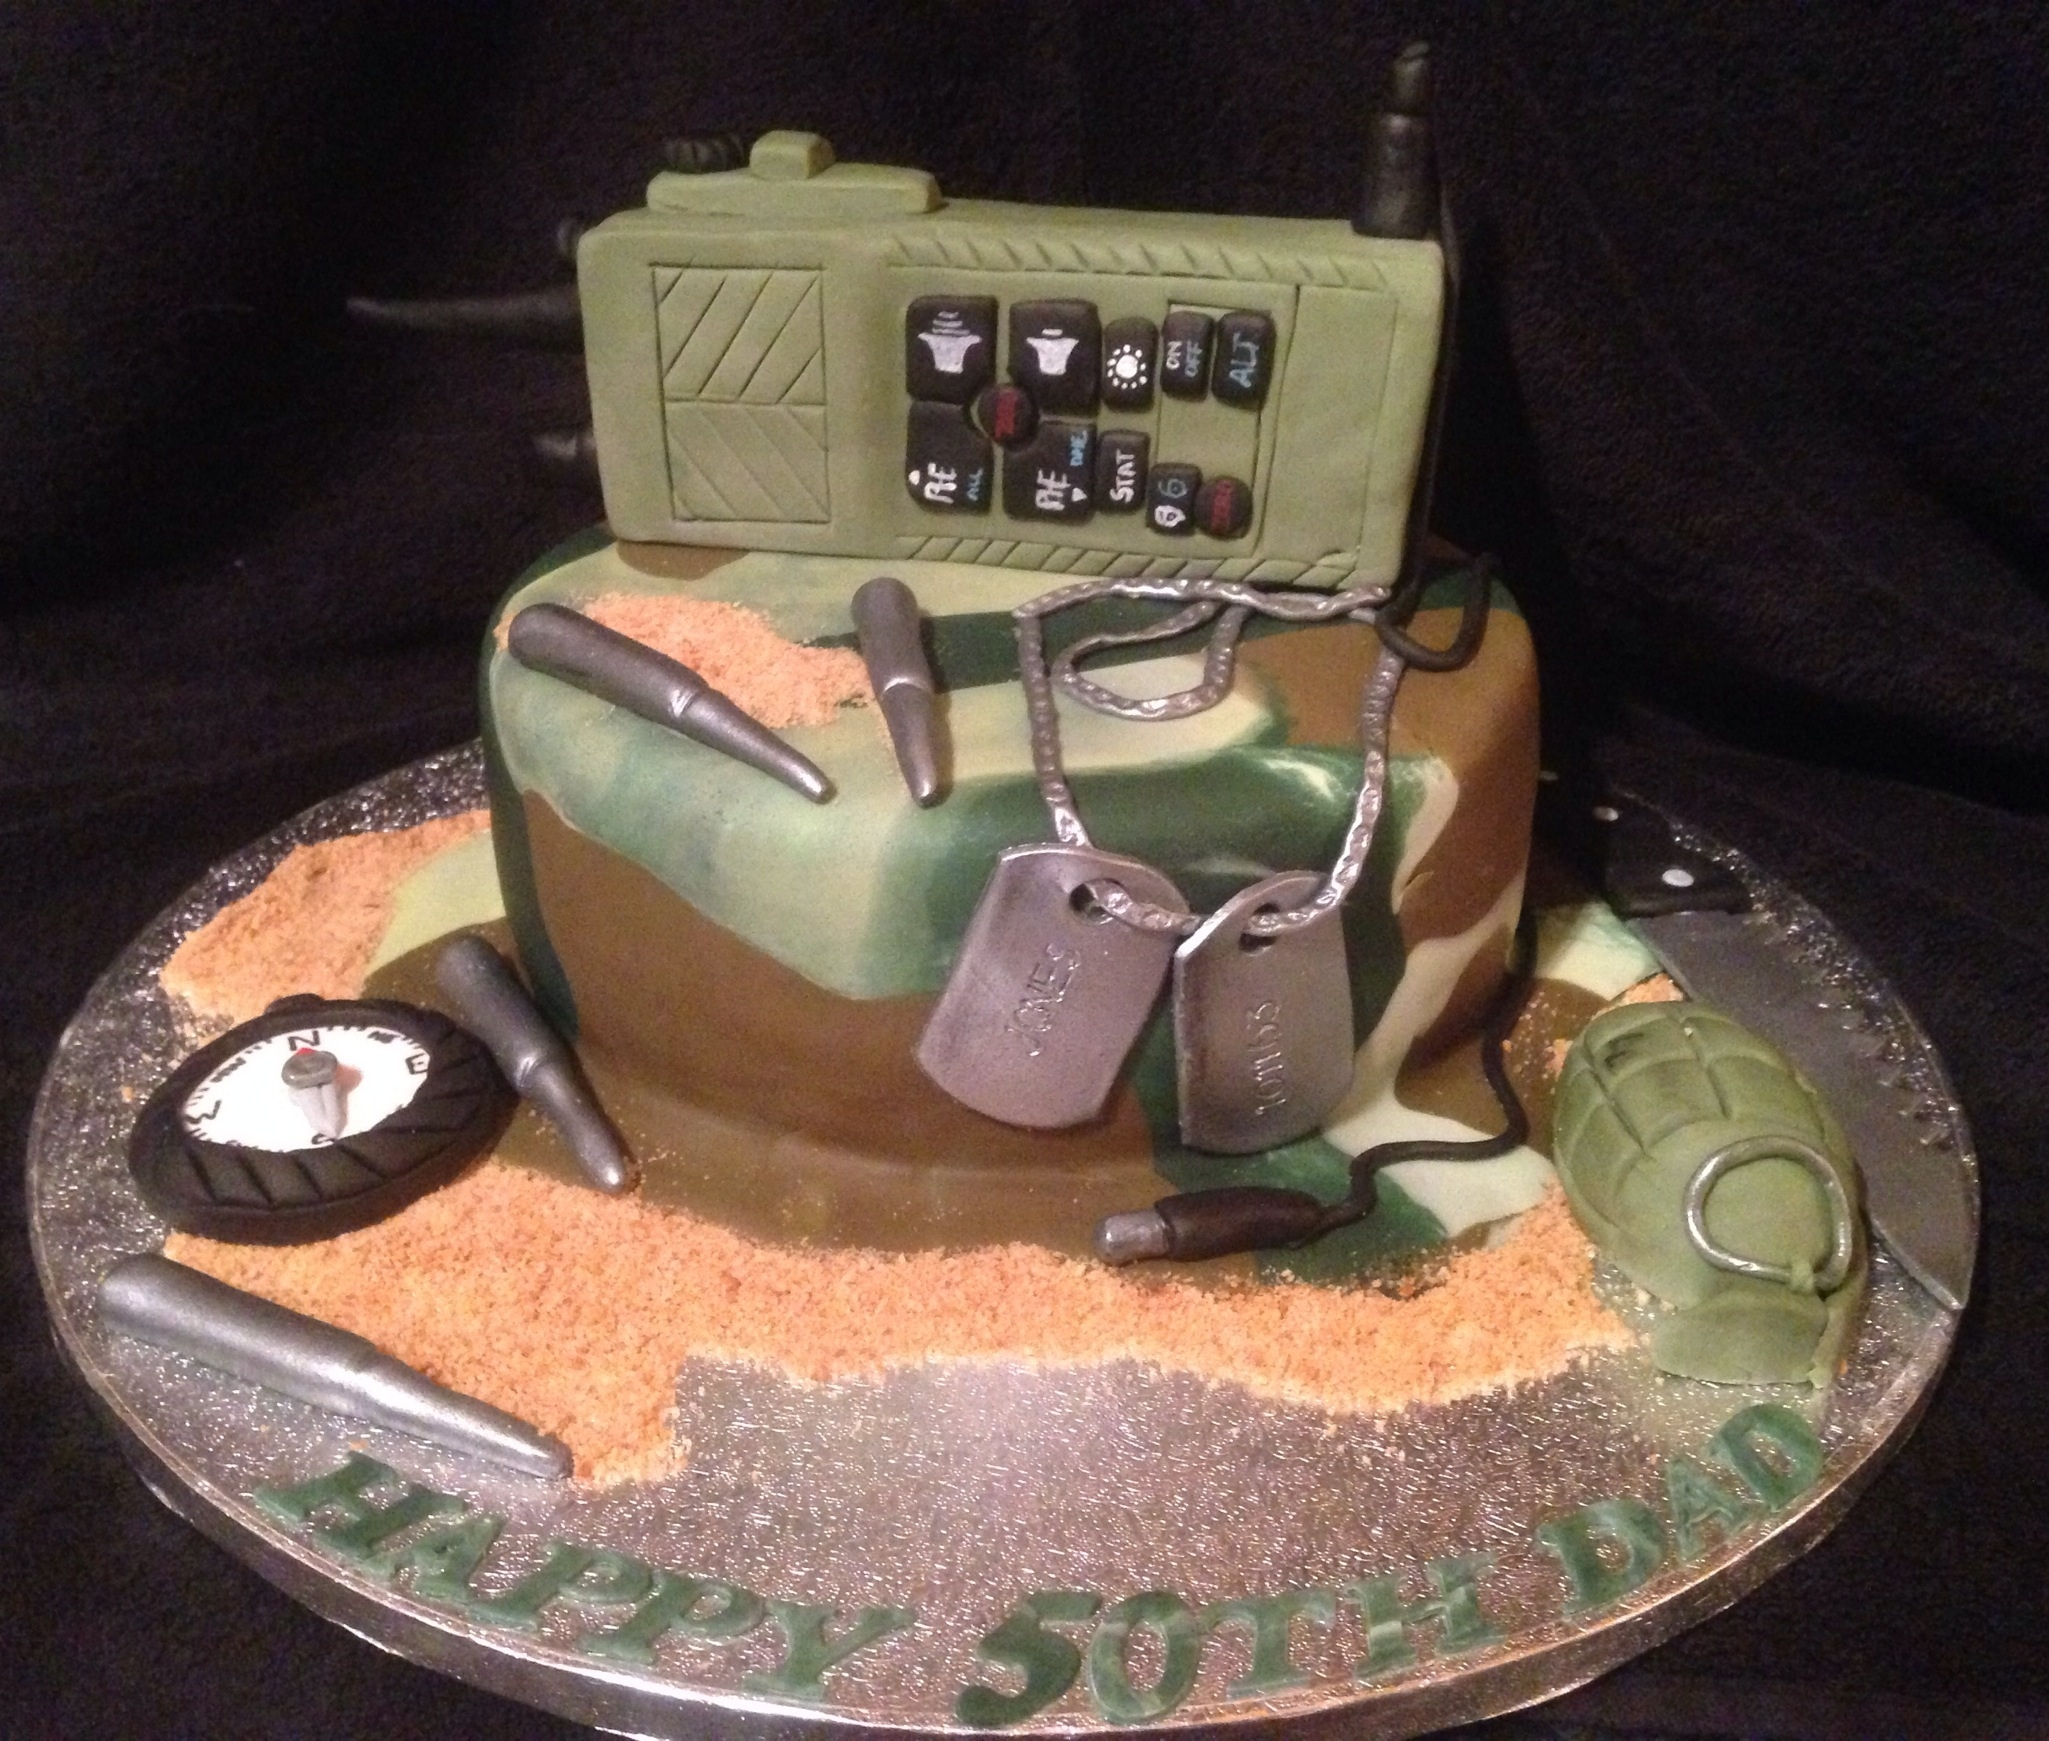 Army Style Cake With Walkie Talkie Grenade Compass Bullets Dog Tags And Knife Army style cake with walkie Talkie, grenade, compass, bullets, dog tags and knife.